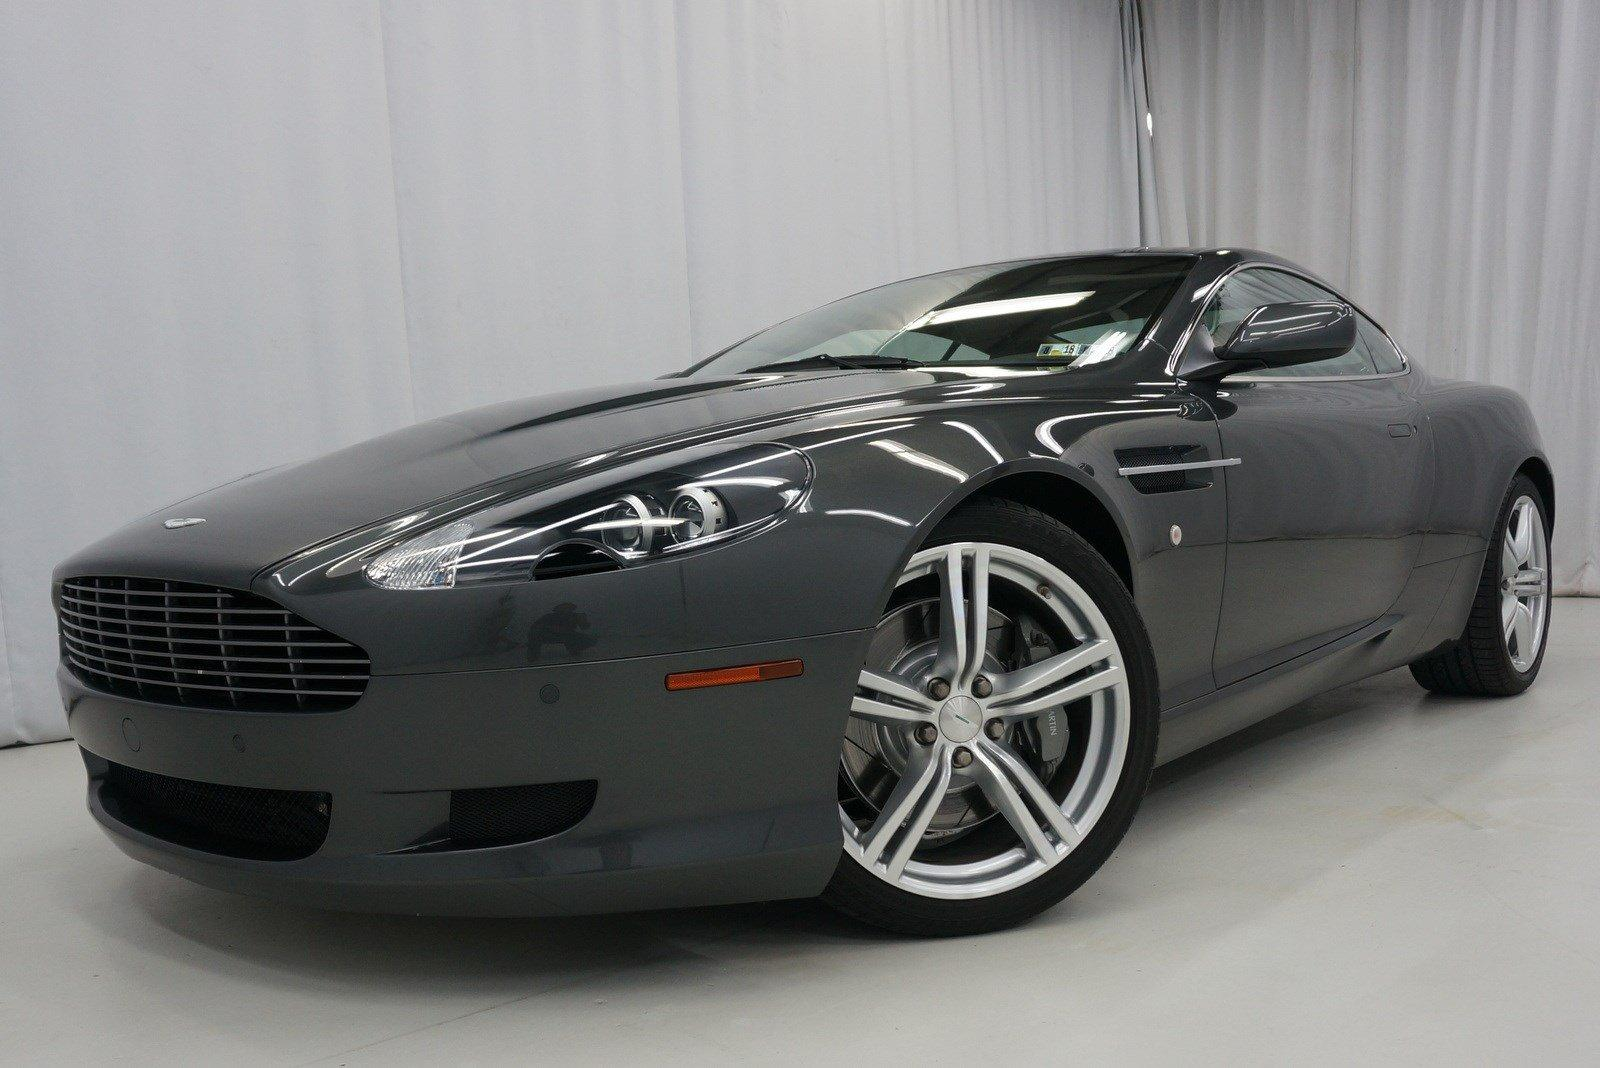 2007 aston martin db9 stock # ga08920 for sale near king of prussia